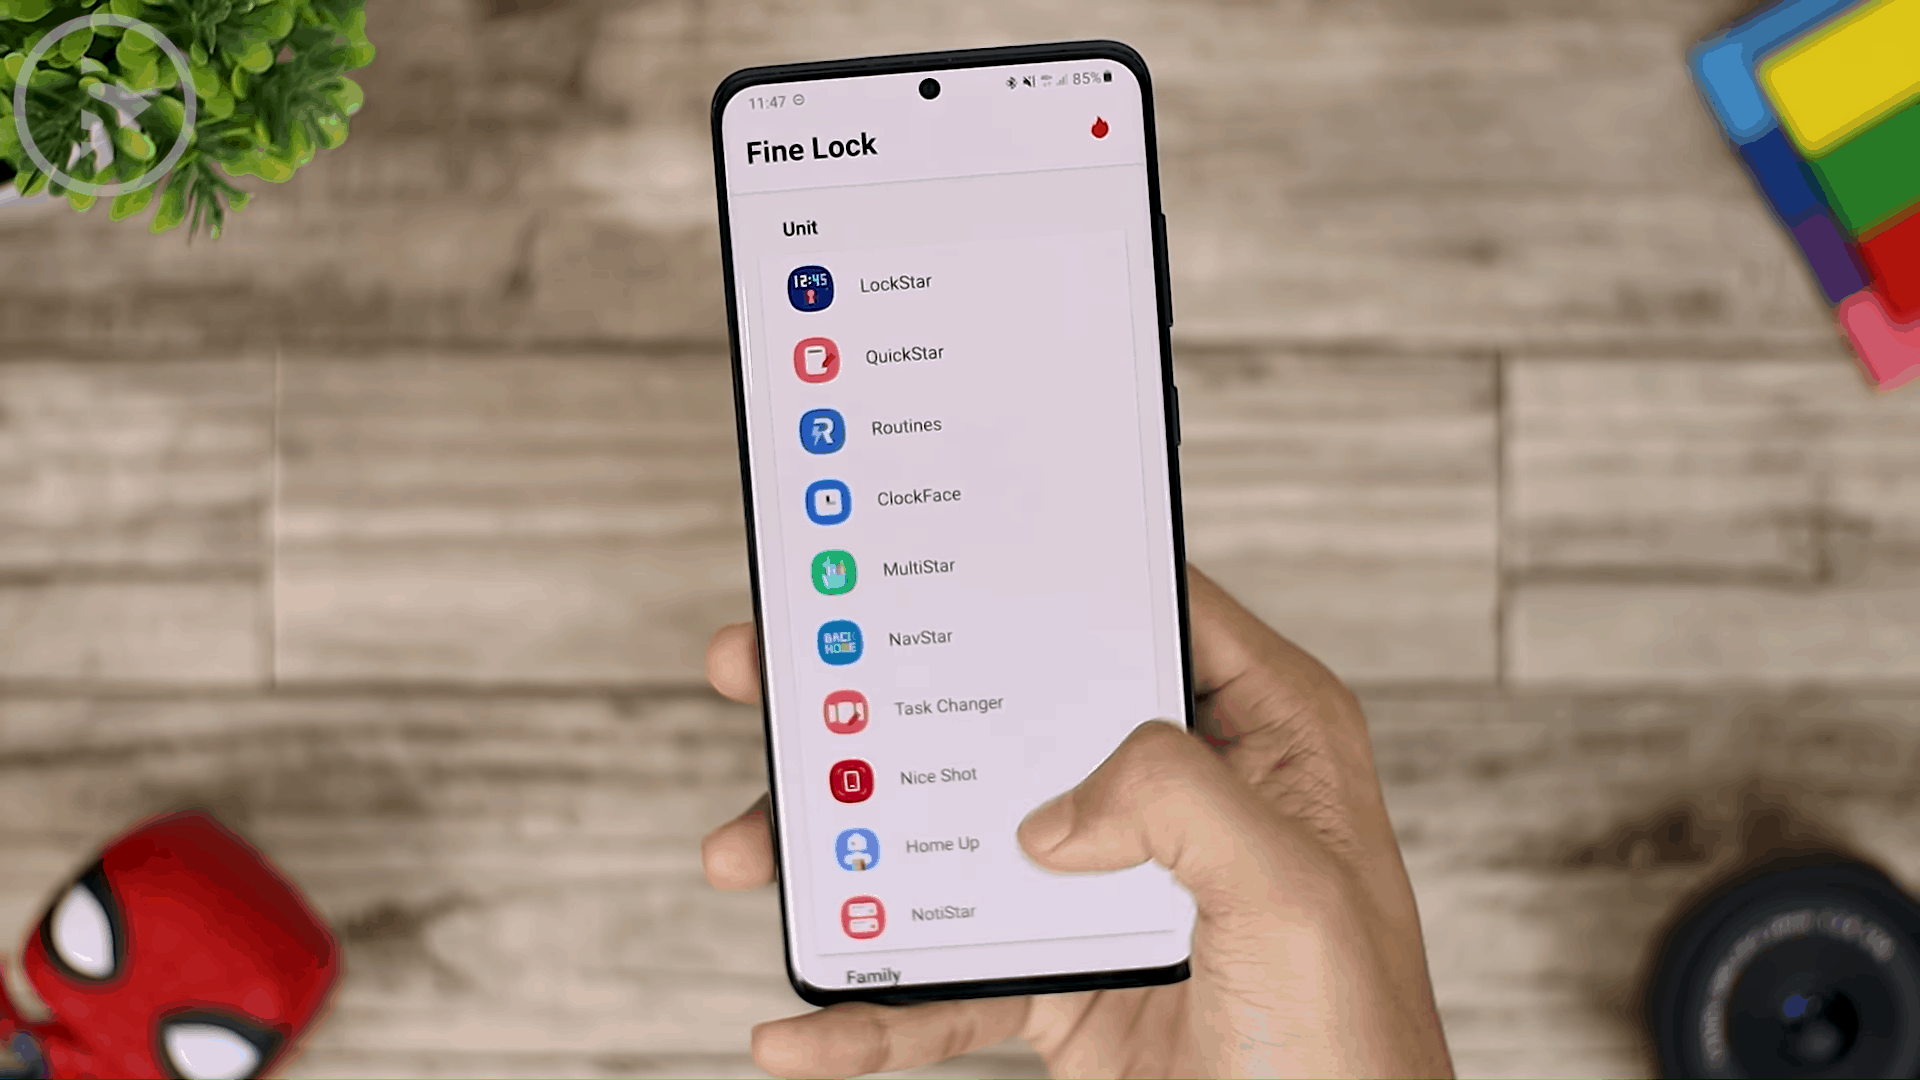 FineLock App - Complete Tips on How to Install the GoodLock in 2021